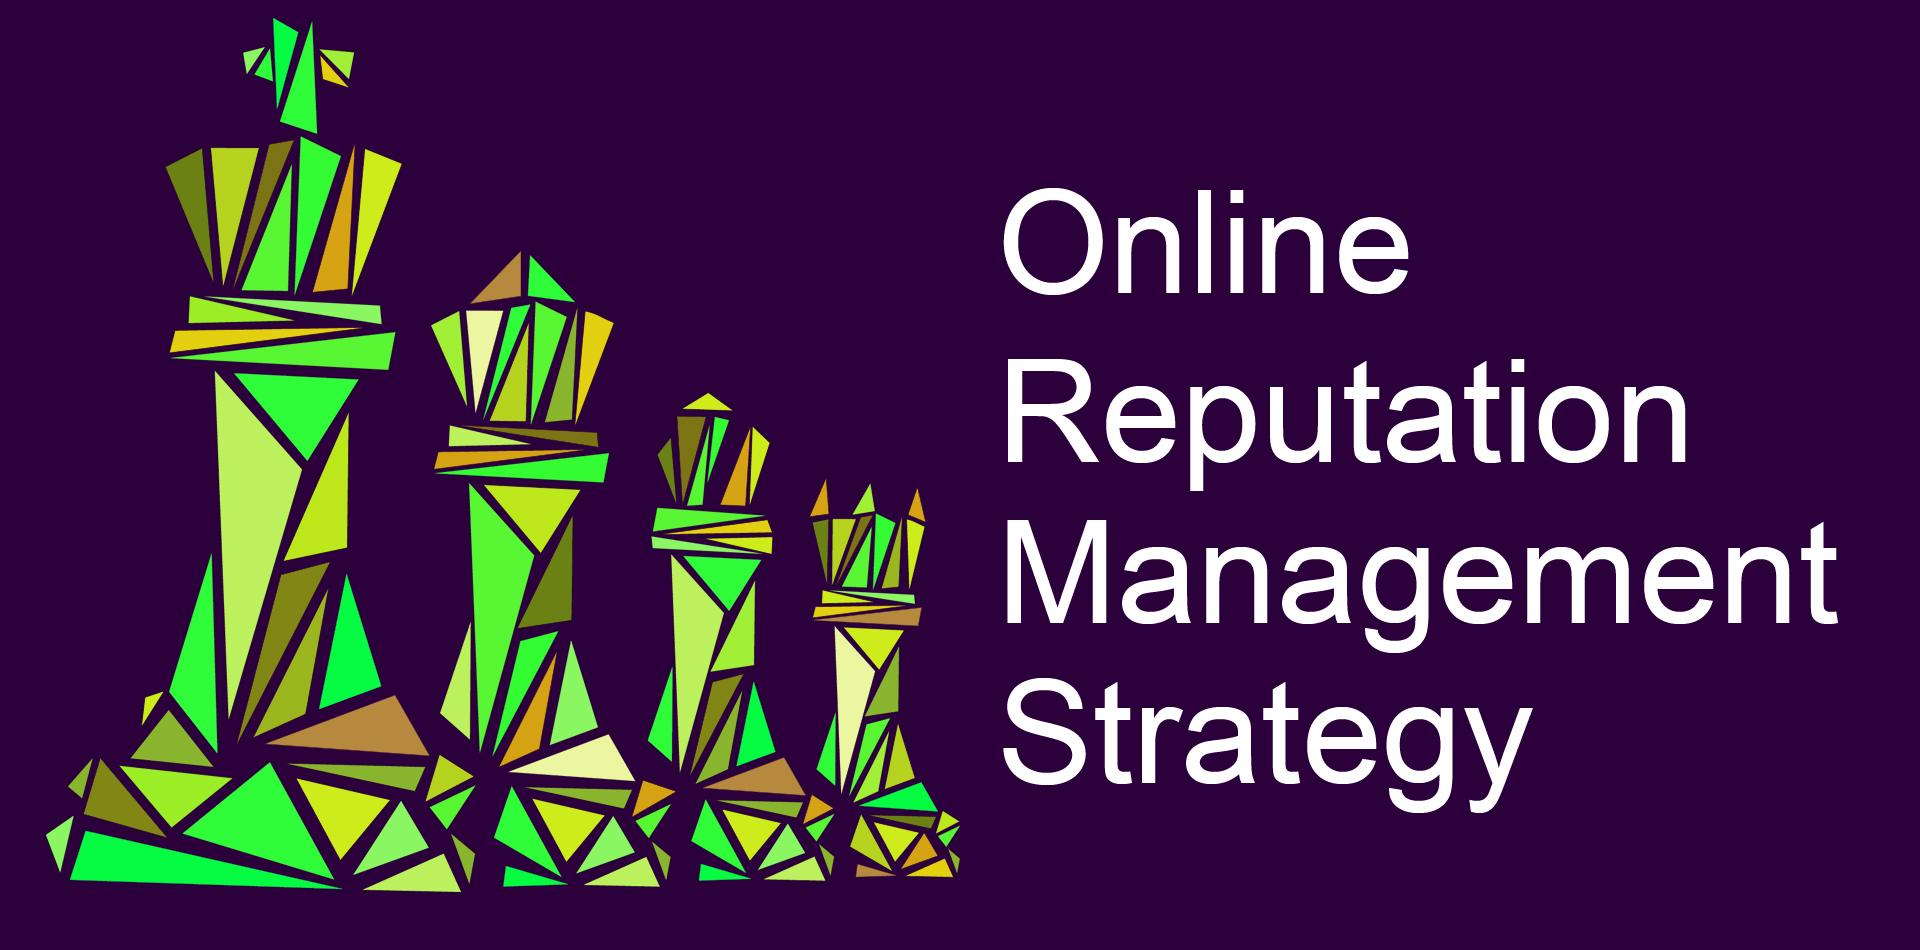 Online Reputation Management Strategy